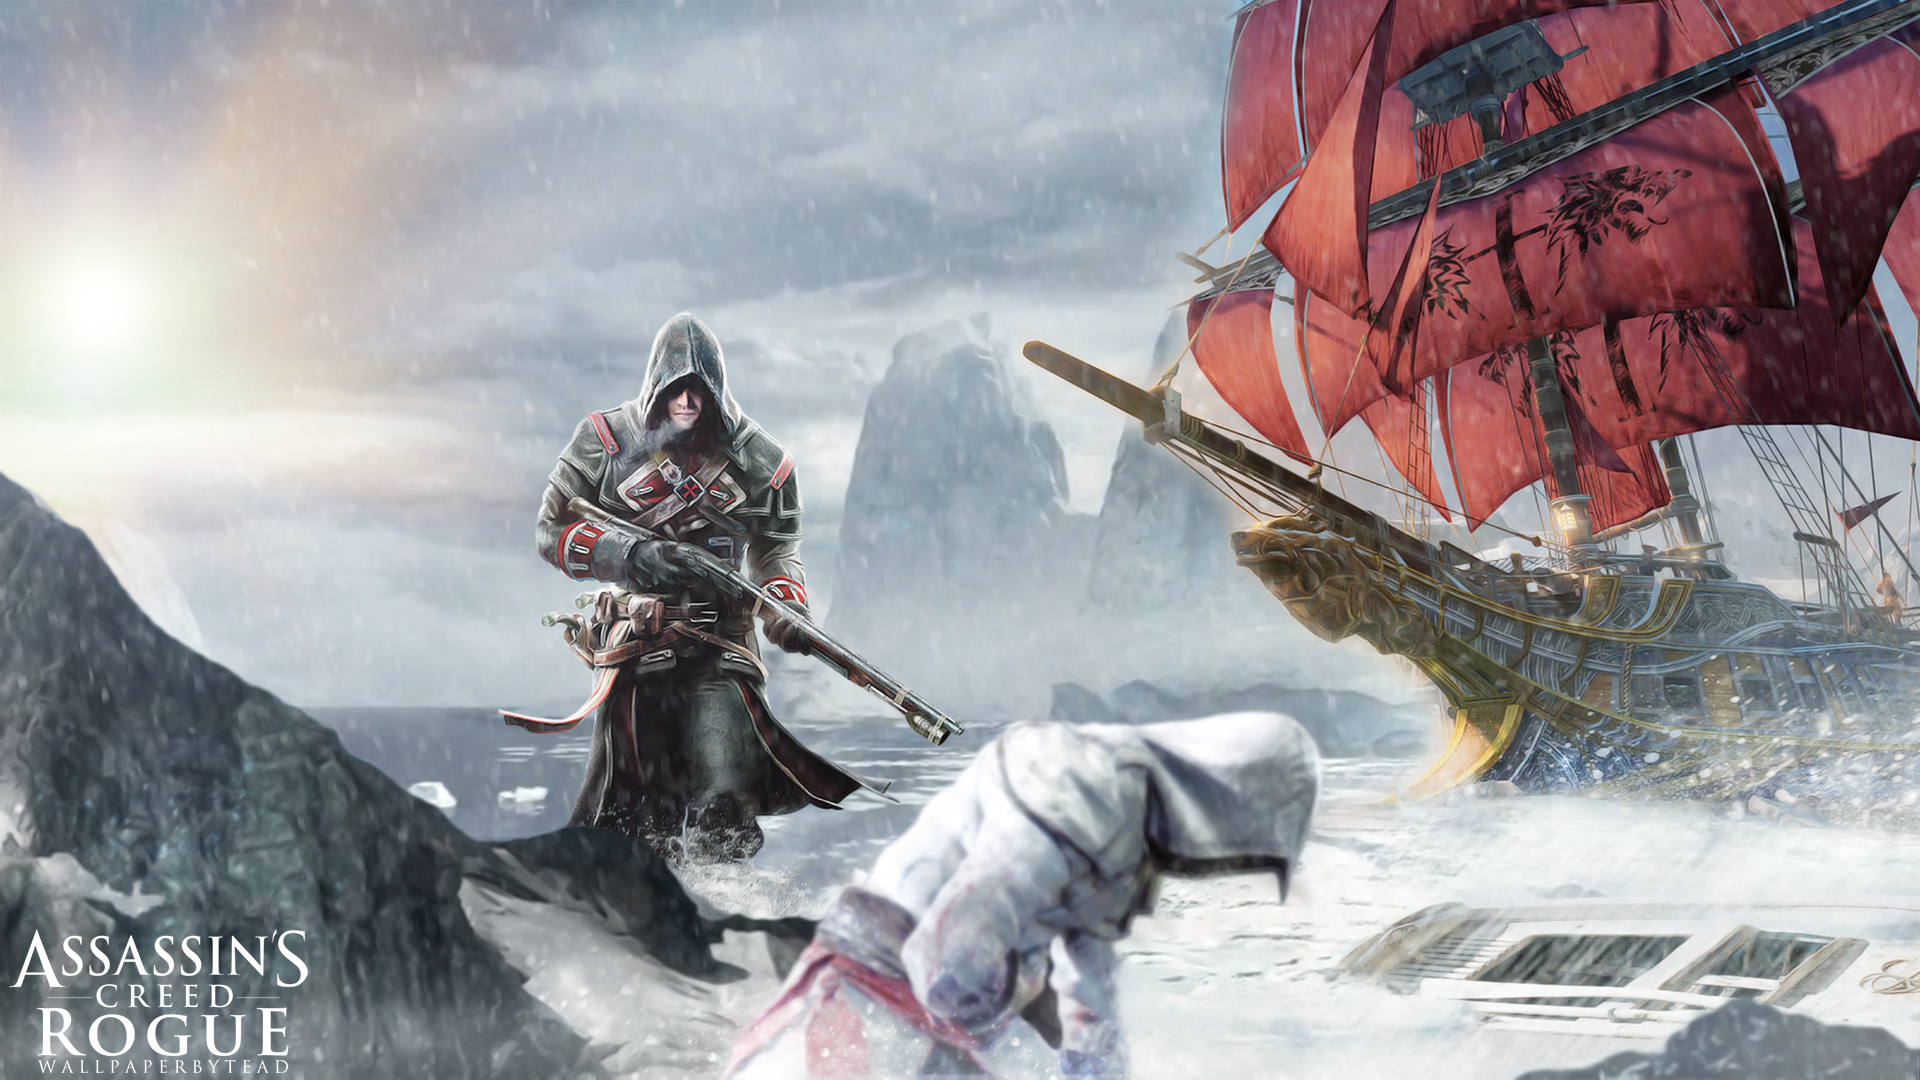 ... Assassin's Creed Rogue wallpaper by teaD by santap555